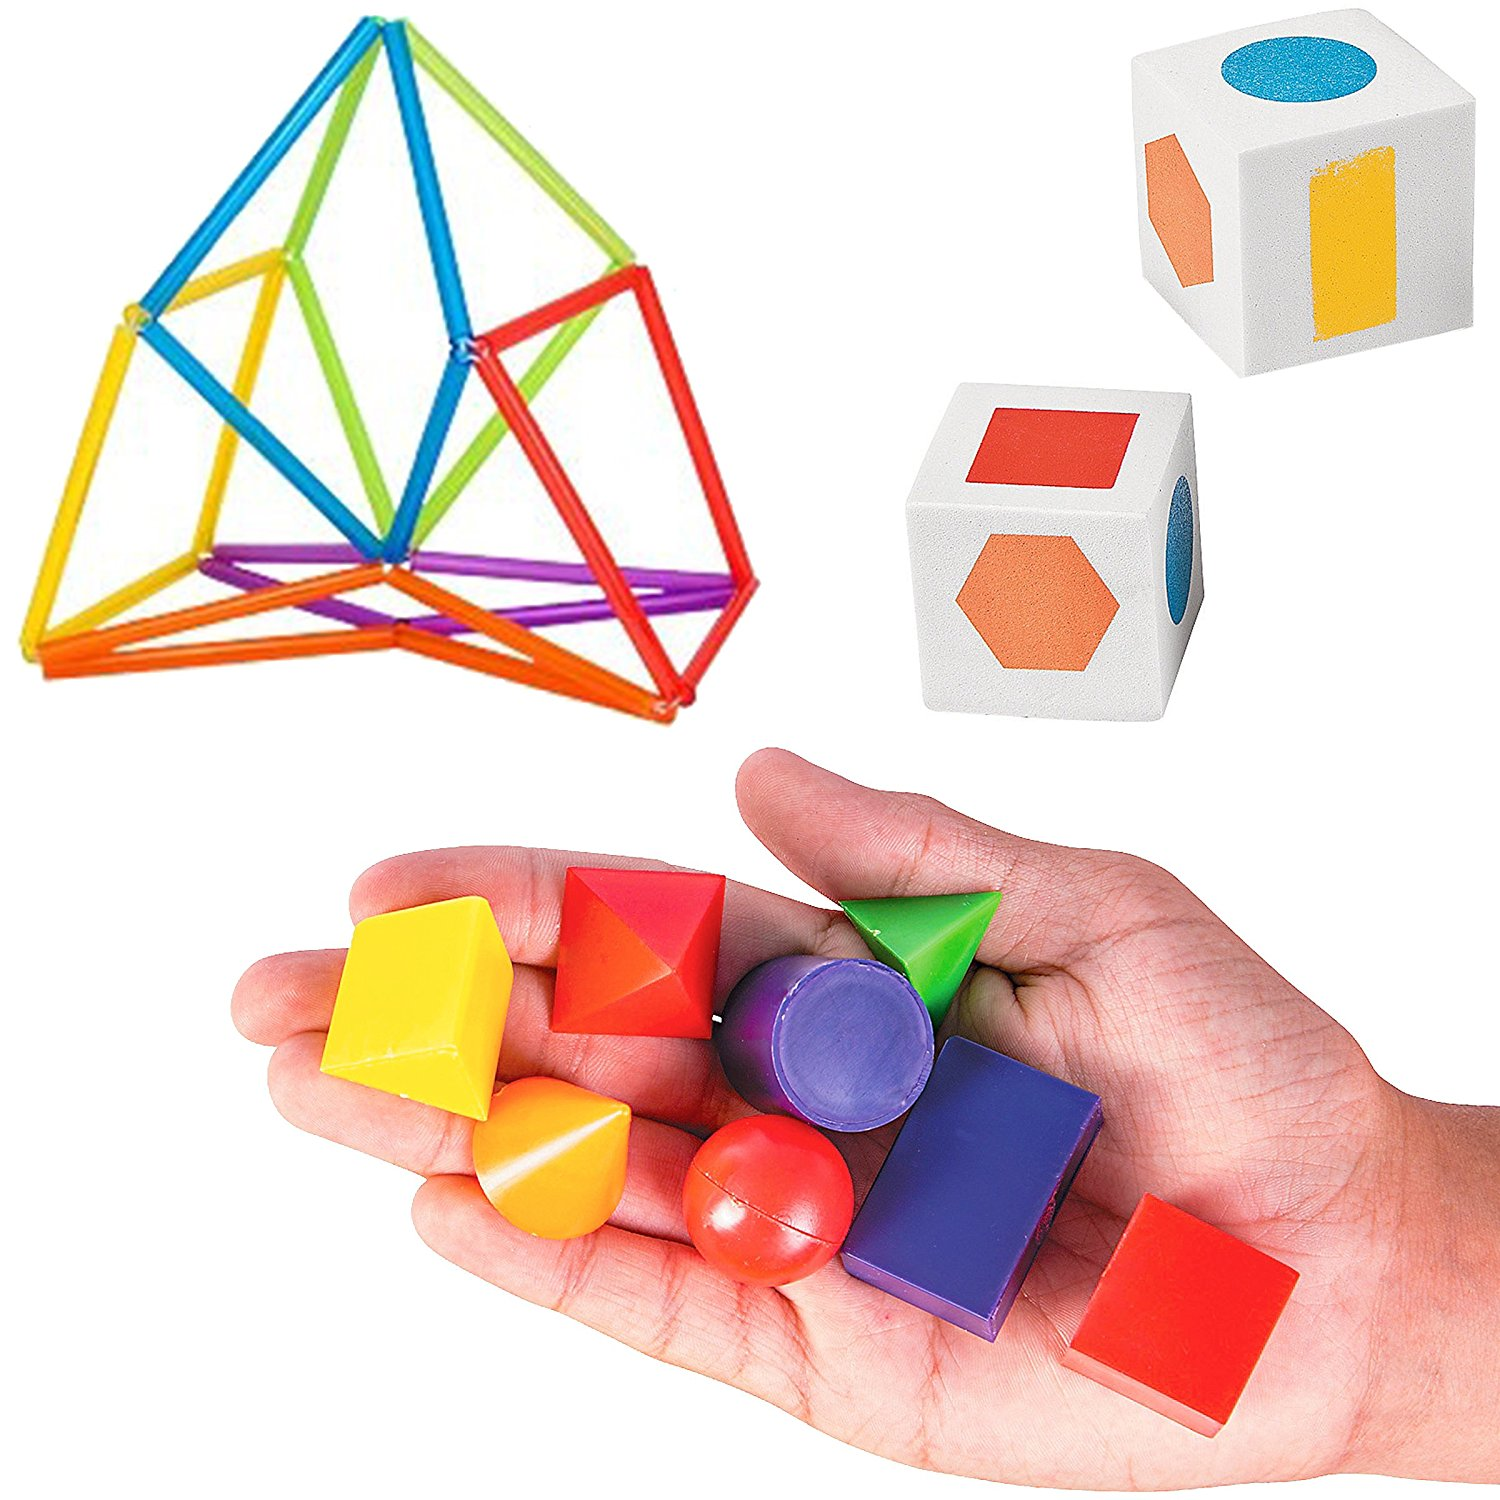 Buy 8 Geometric Solid 3d Shapes For Mathematics